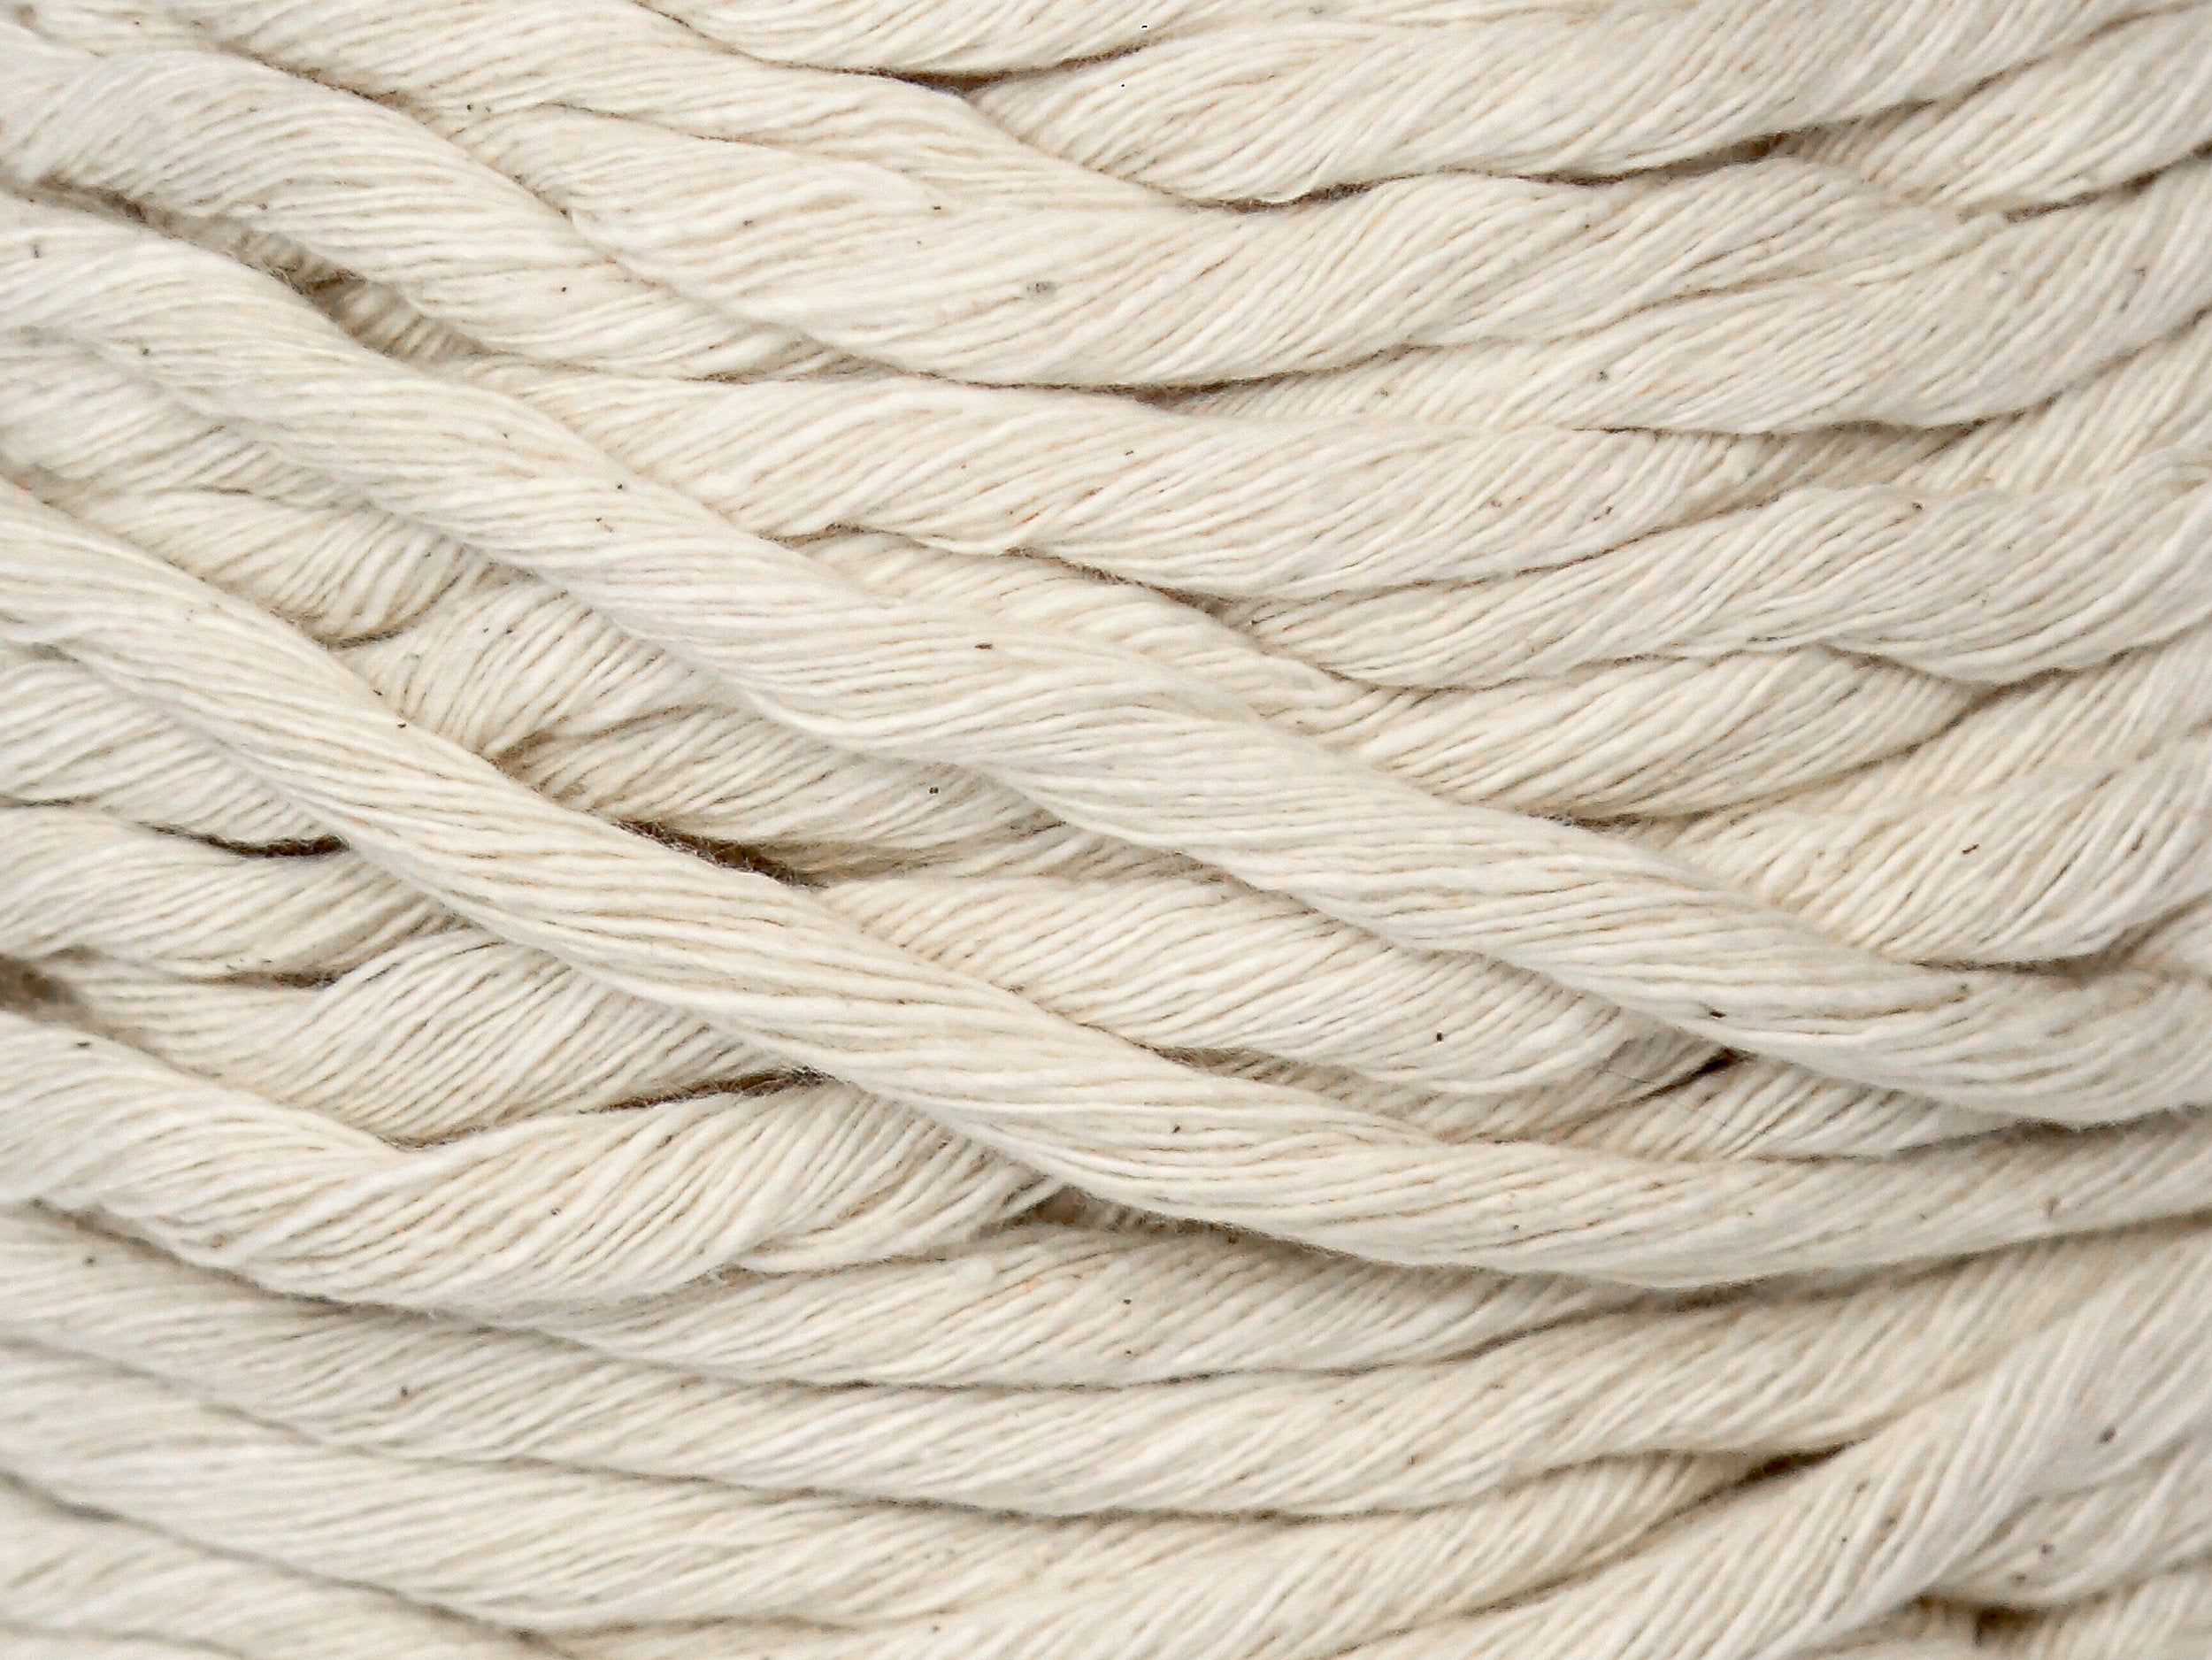 3.5 mm Twisted 100% cotton macrame rope,70 meters Cotton cord, Macrame cord,  #CottonMacrameRope #CottonRope #MacrameYarn #YarnForMacrame #MacrameSupplies #MacrameString #MacrameRope #4MmMacrameCord #CottonCord #MacrameCord